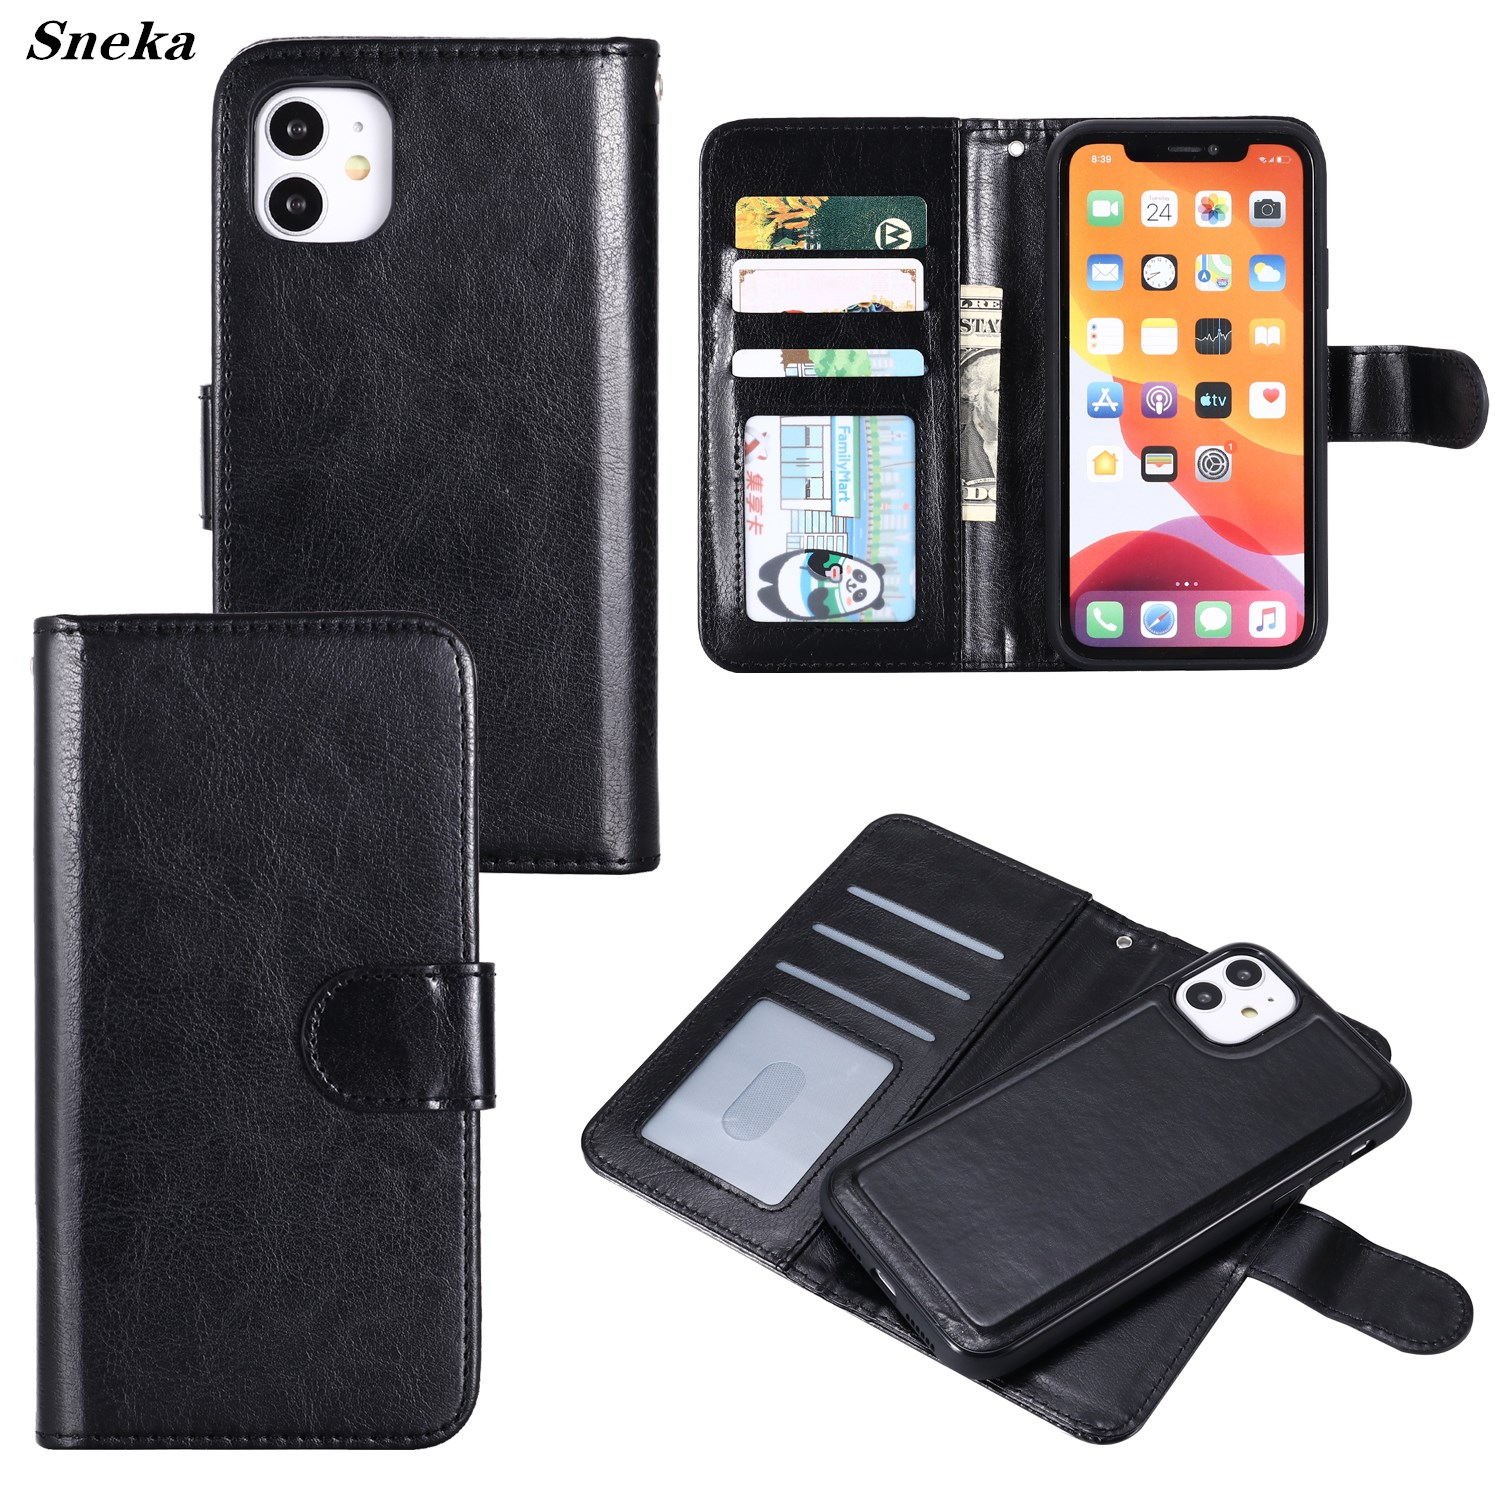 Leather Coque for iPhone 12 11 Pro Max XR X XS SE 2020 7 8 Plus Case Luxury Flip Wallet Phone Bag Magnetic 2in1 Detachable Cover image